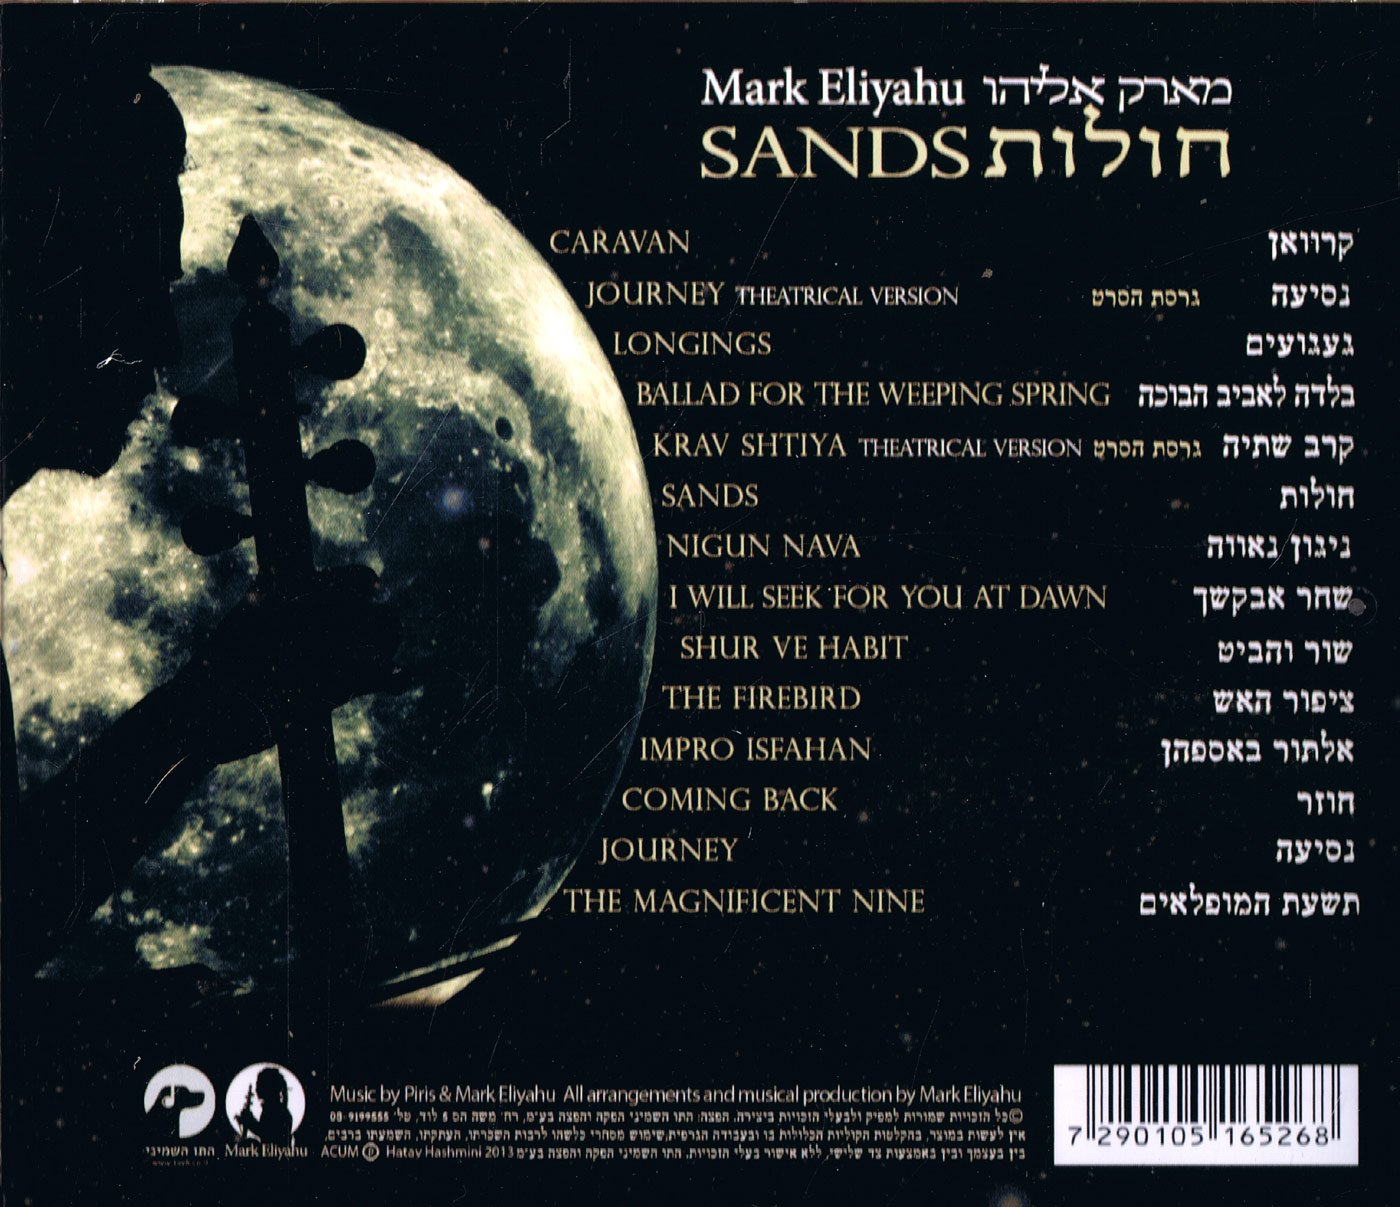 Mark Eliyahu Piris Eliyahu Ishtar Rinat Bar Sands New 2013 Album Including The Music From The Movie Ballad For The Weeping Spring Amazon Com Music